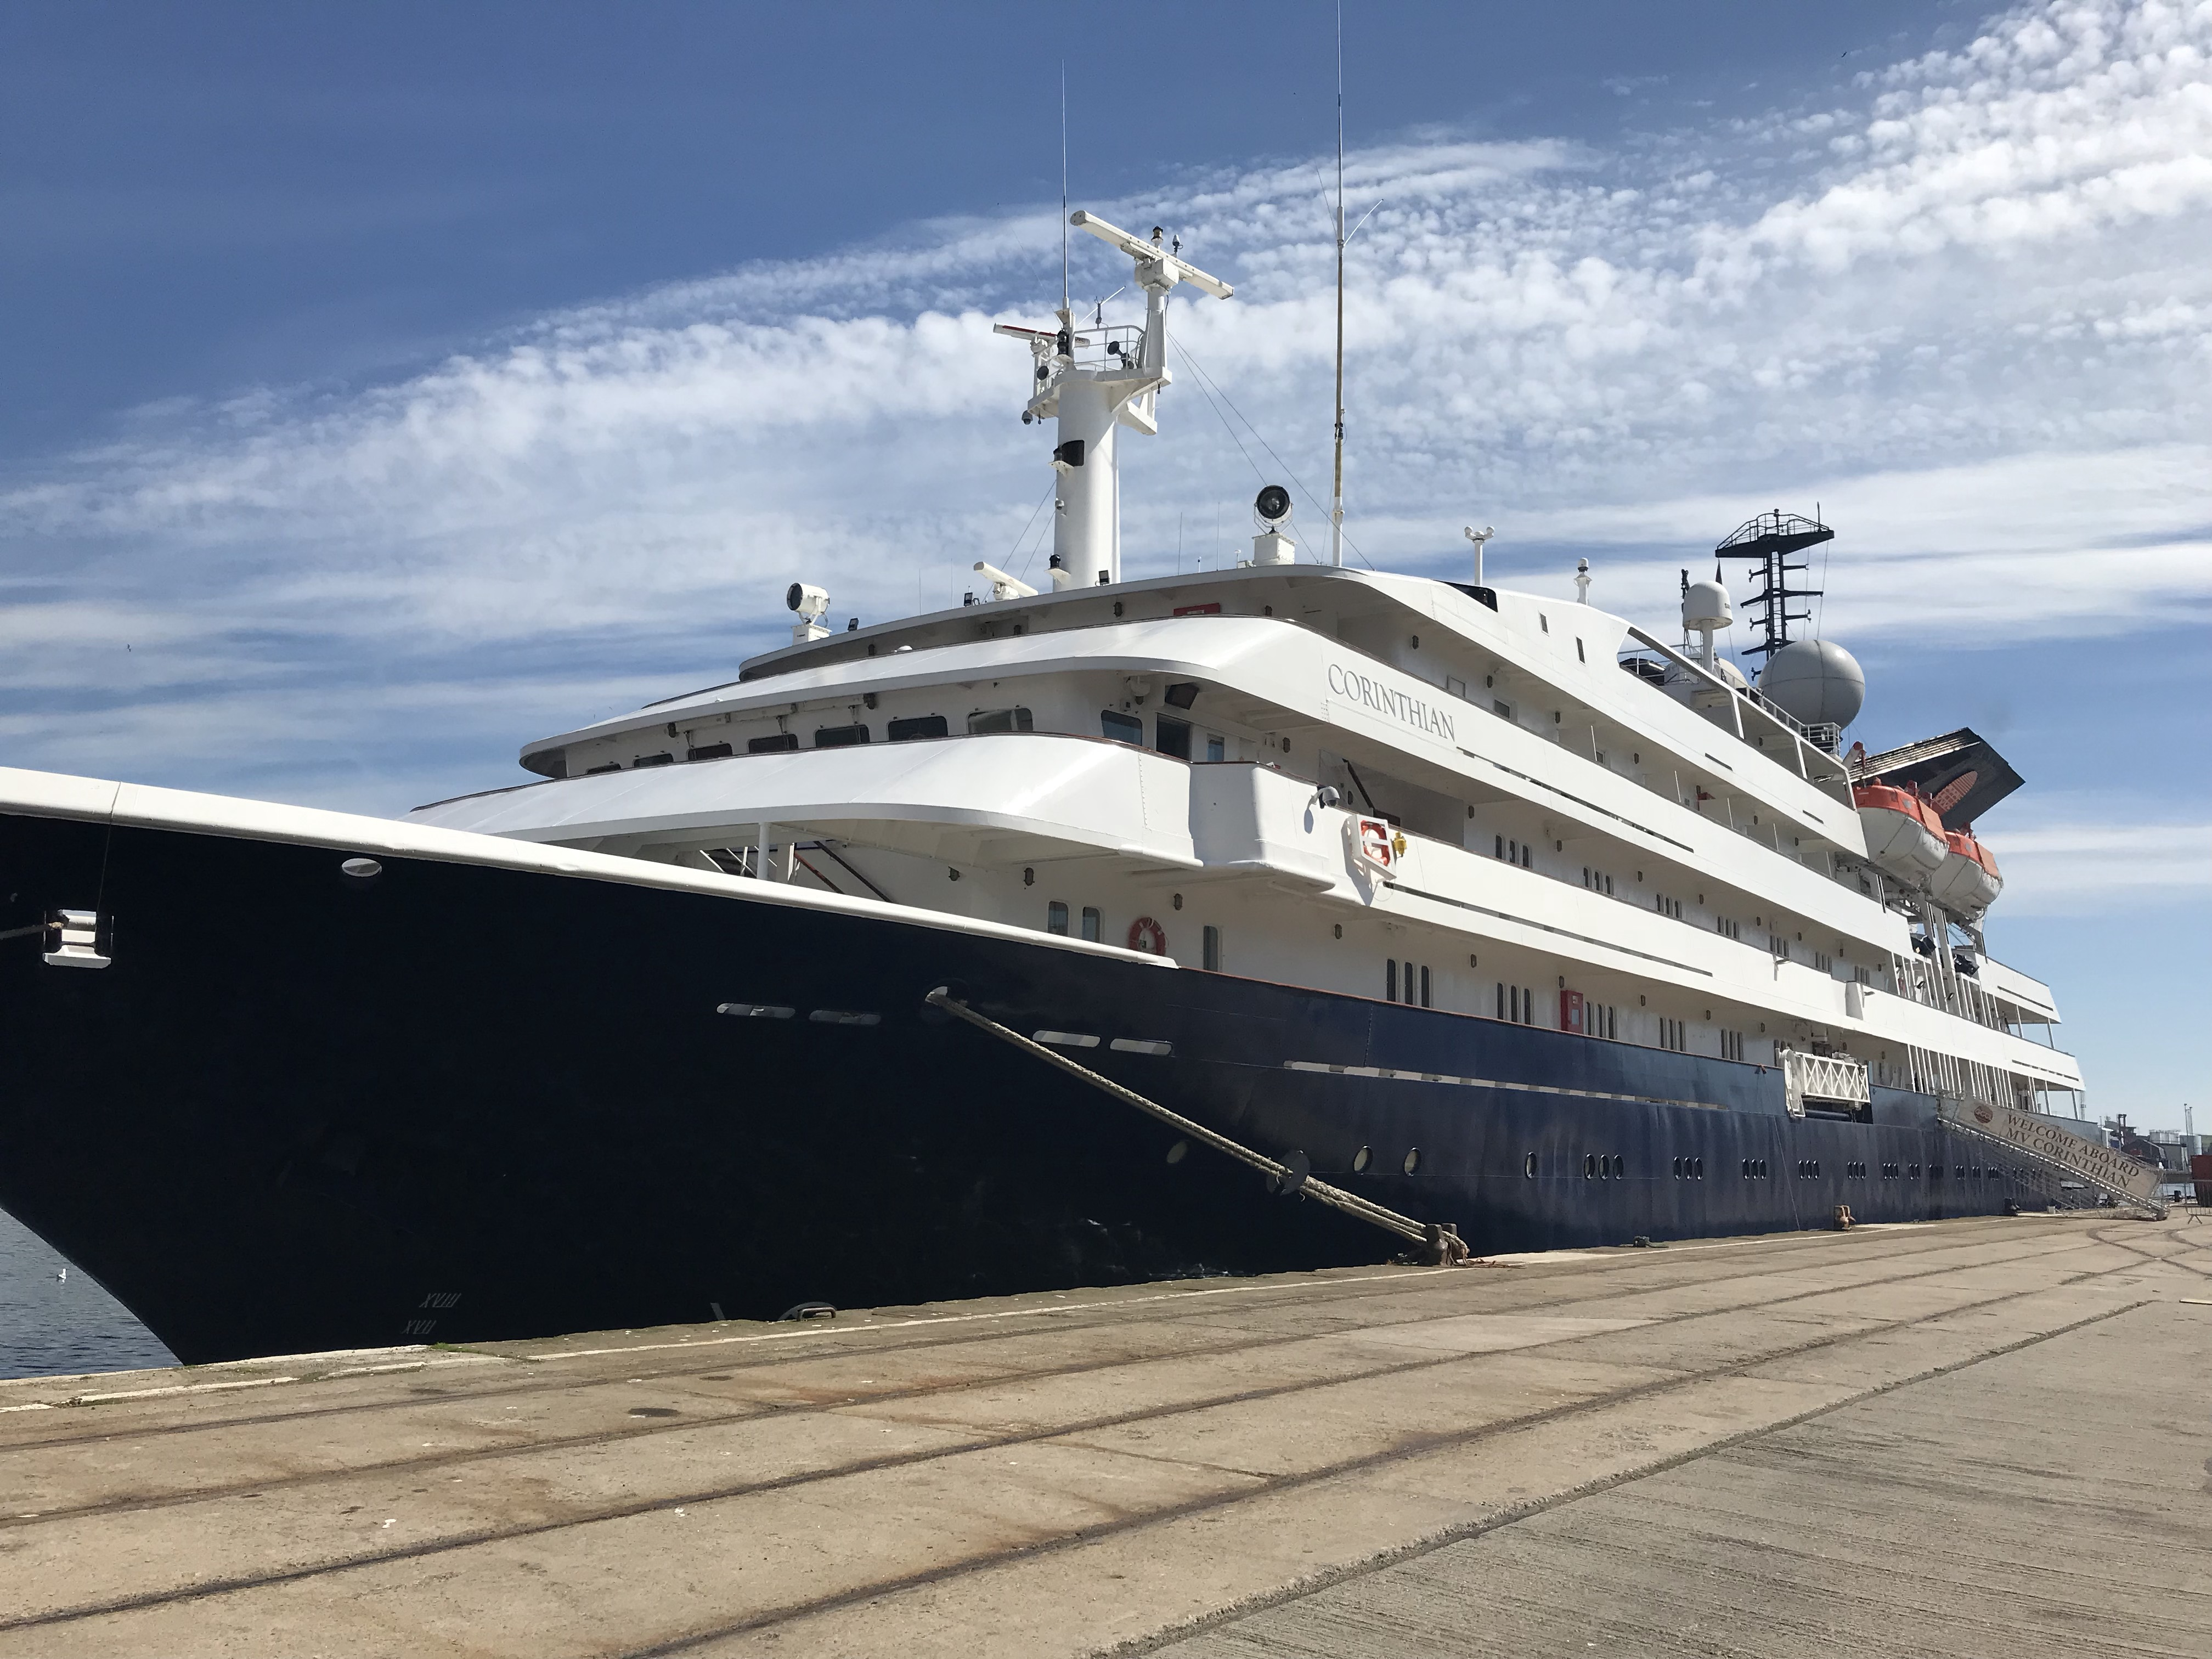 2018 cruise season opens with arrival of Corinthian